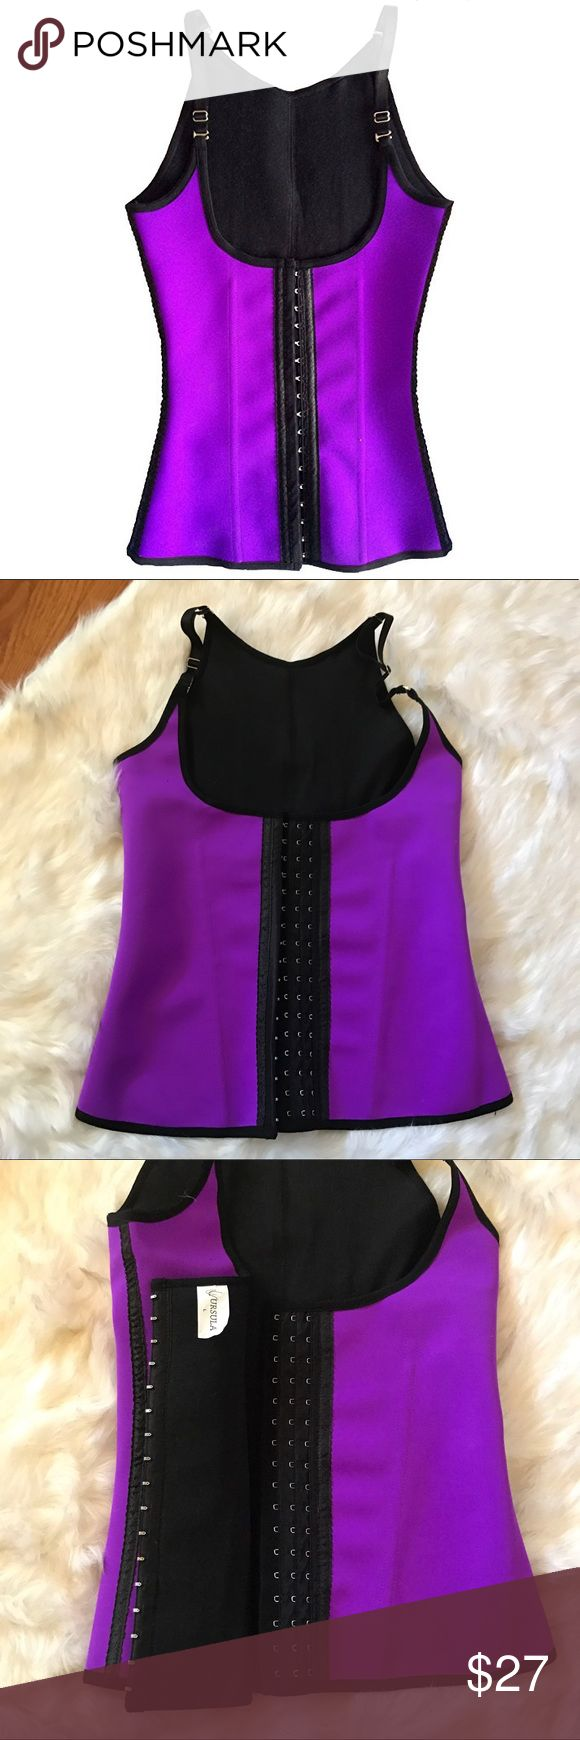 NEW! URSULA WAIST TRAINER VEST, NEVER WORN! LIKE NEW NEVER WORN! URSULA WAIST TRAINER VEST. Please read description and size chart in photos to determine your fit! PURPLE- LARGE Ursula Intimates & Sleepwear Shapewear